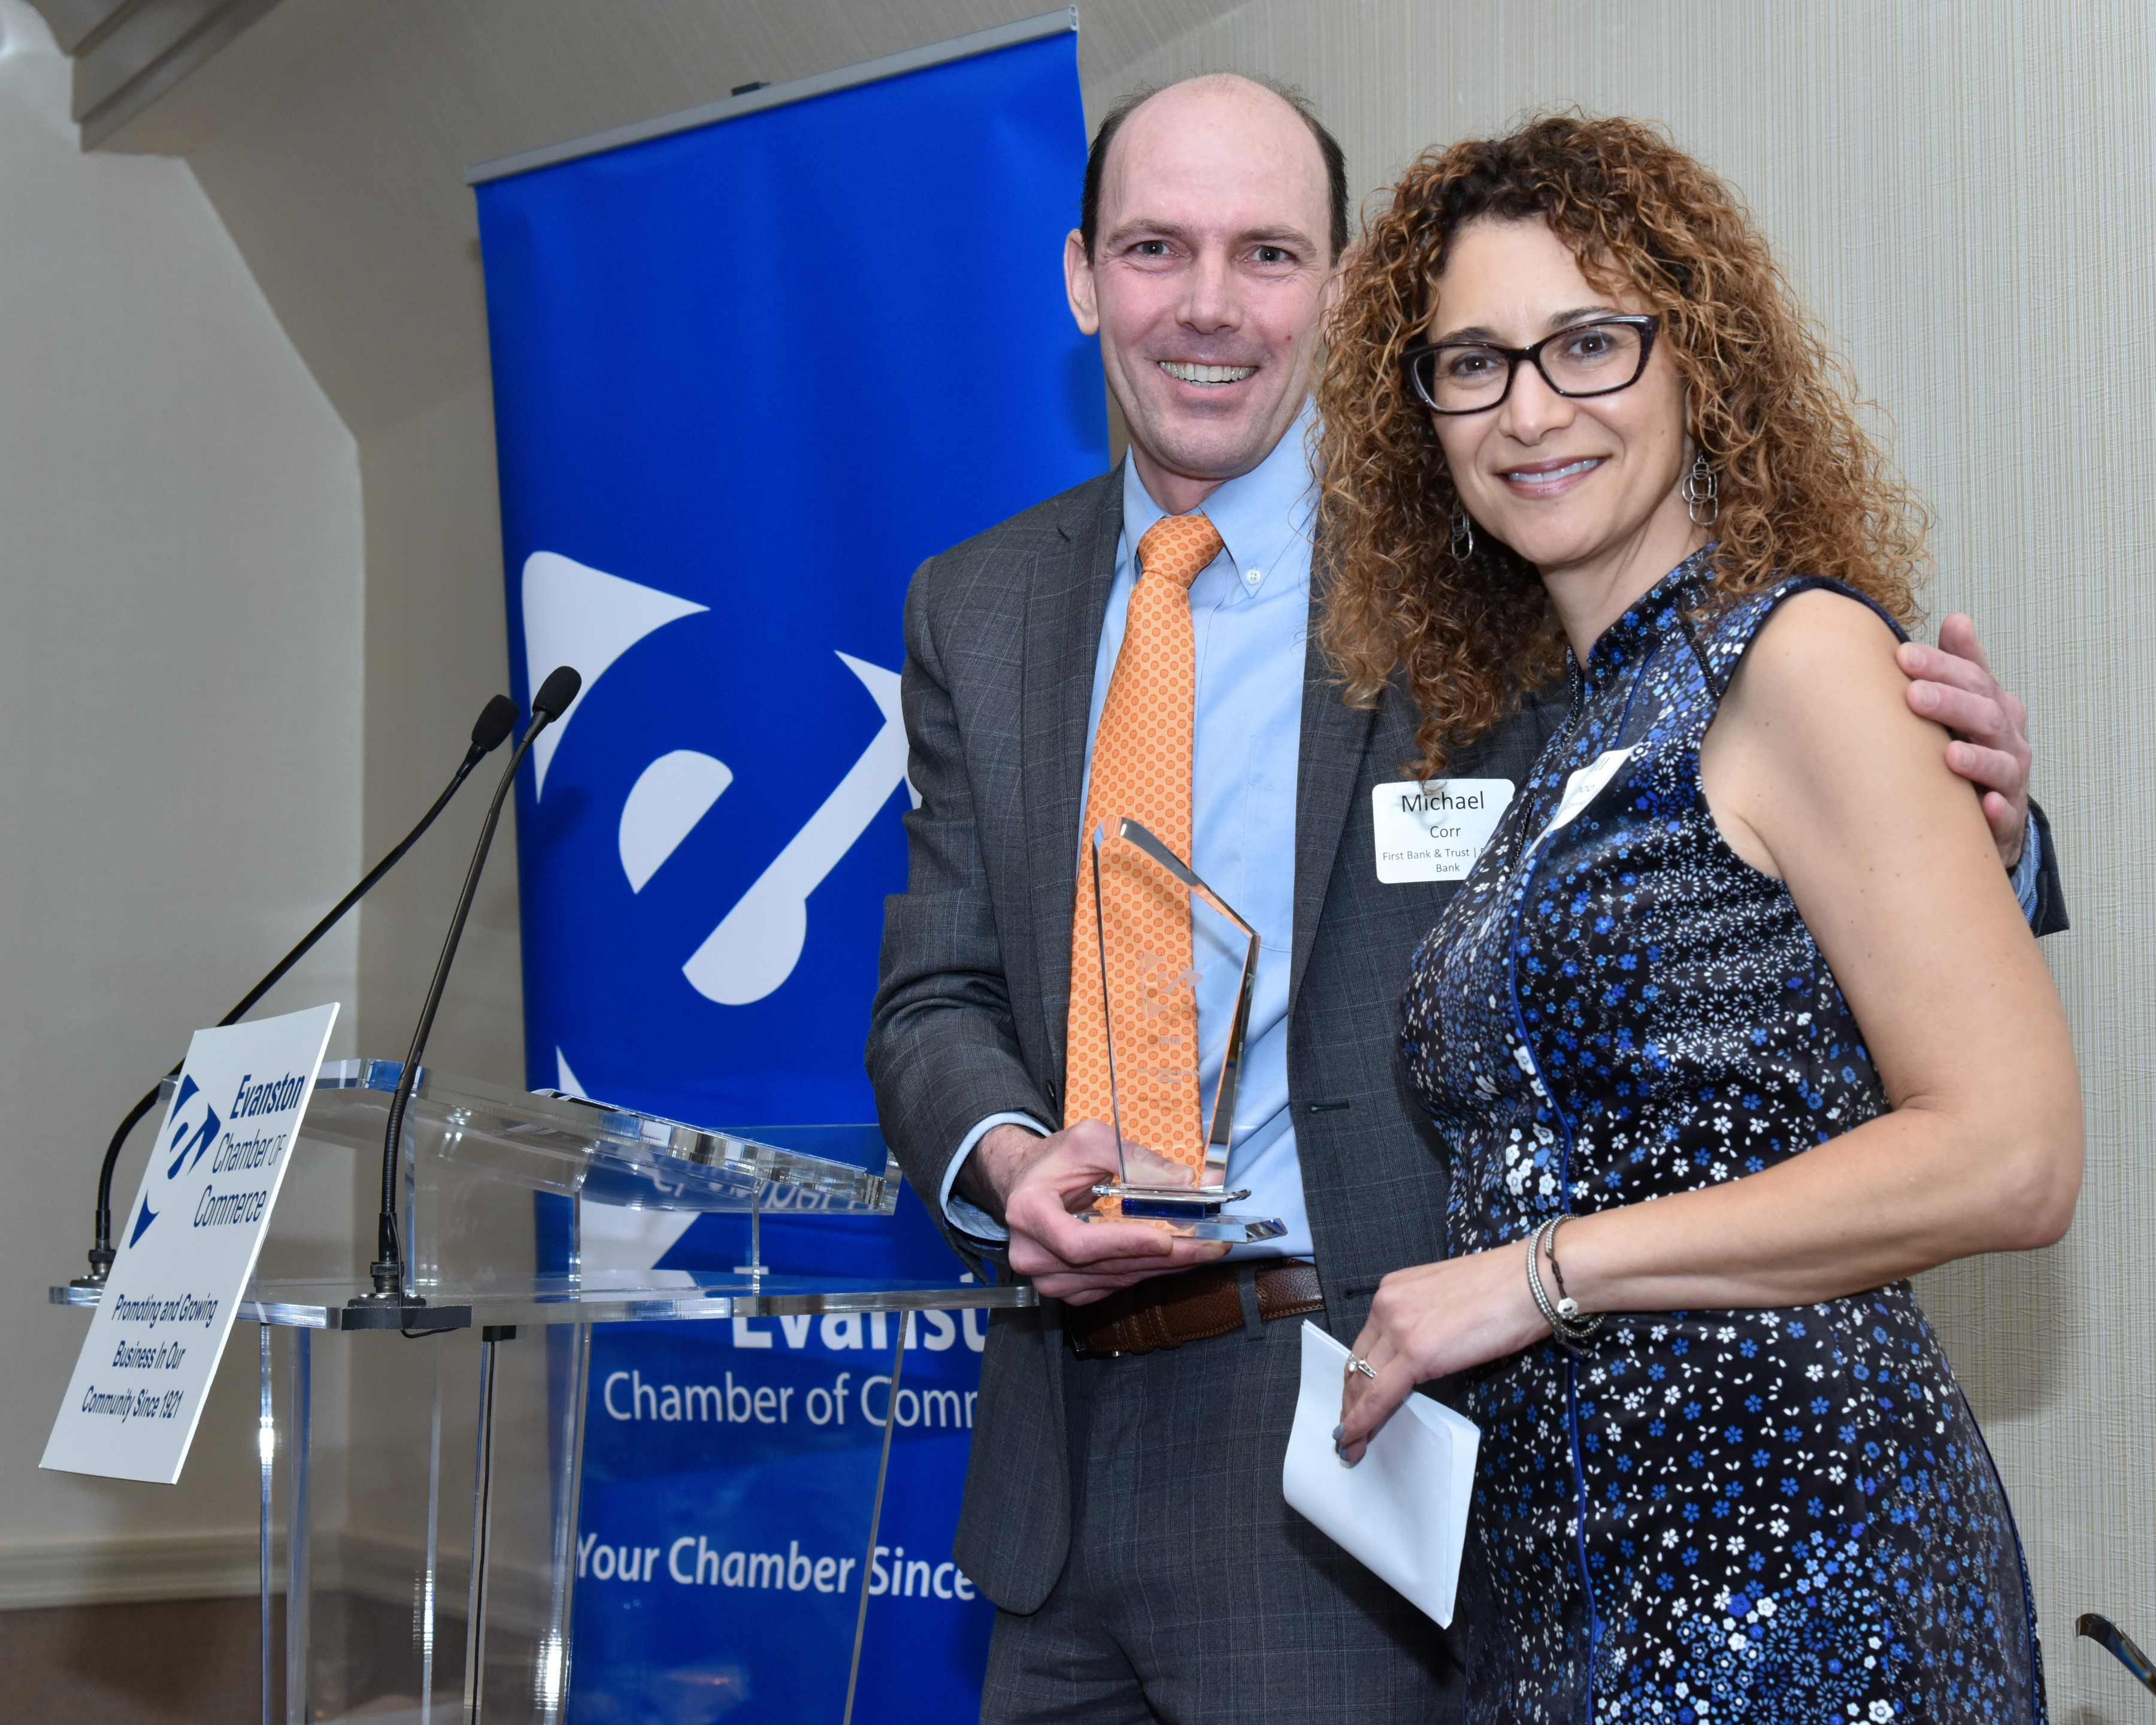 b472eb83f74d Dr. Jill Bishop of Multilingual Connections and Michael Coor of Byline Bank